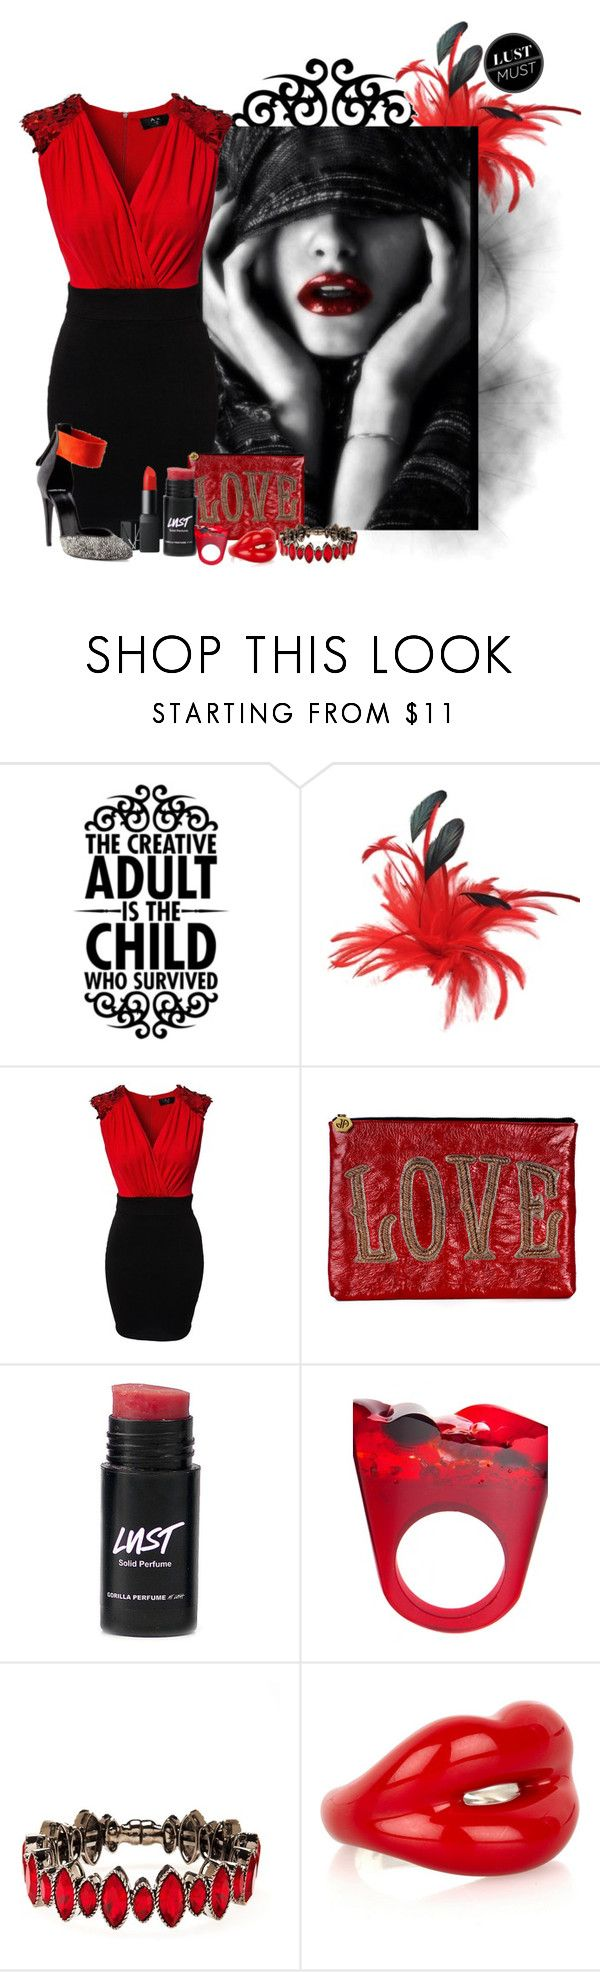 """""""Seven Deadly Sins: Lust"""" by stylesdice ❤ liked on Polyvore featuring AX Paris, Jonathan Adler, Pasionae, NARS Cosmetics, Pierre Hardy, Henri Bendel and Solange Azagury-Partridge"""